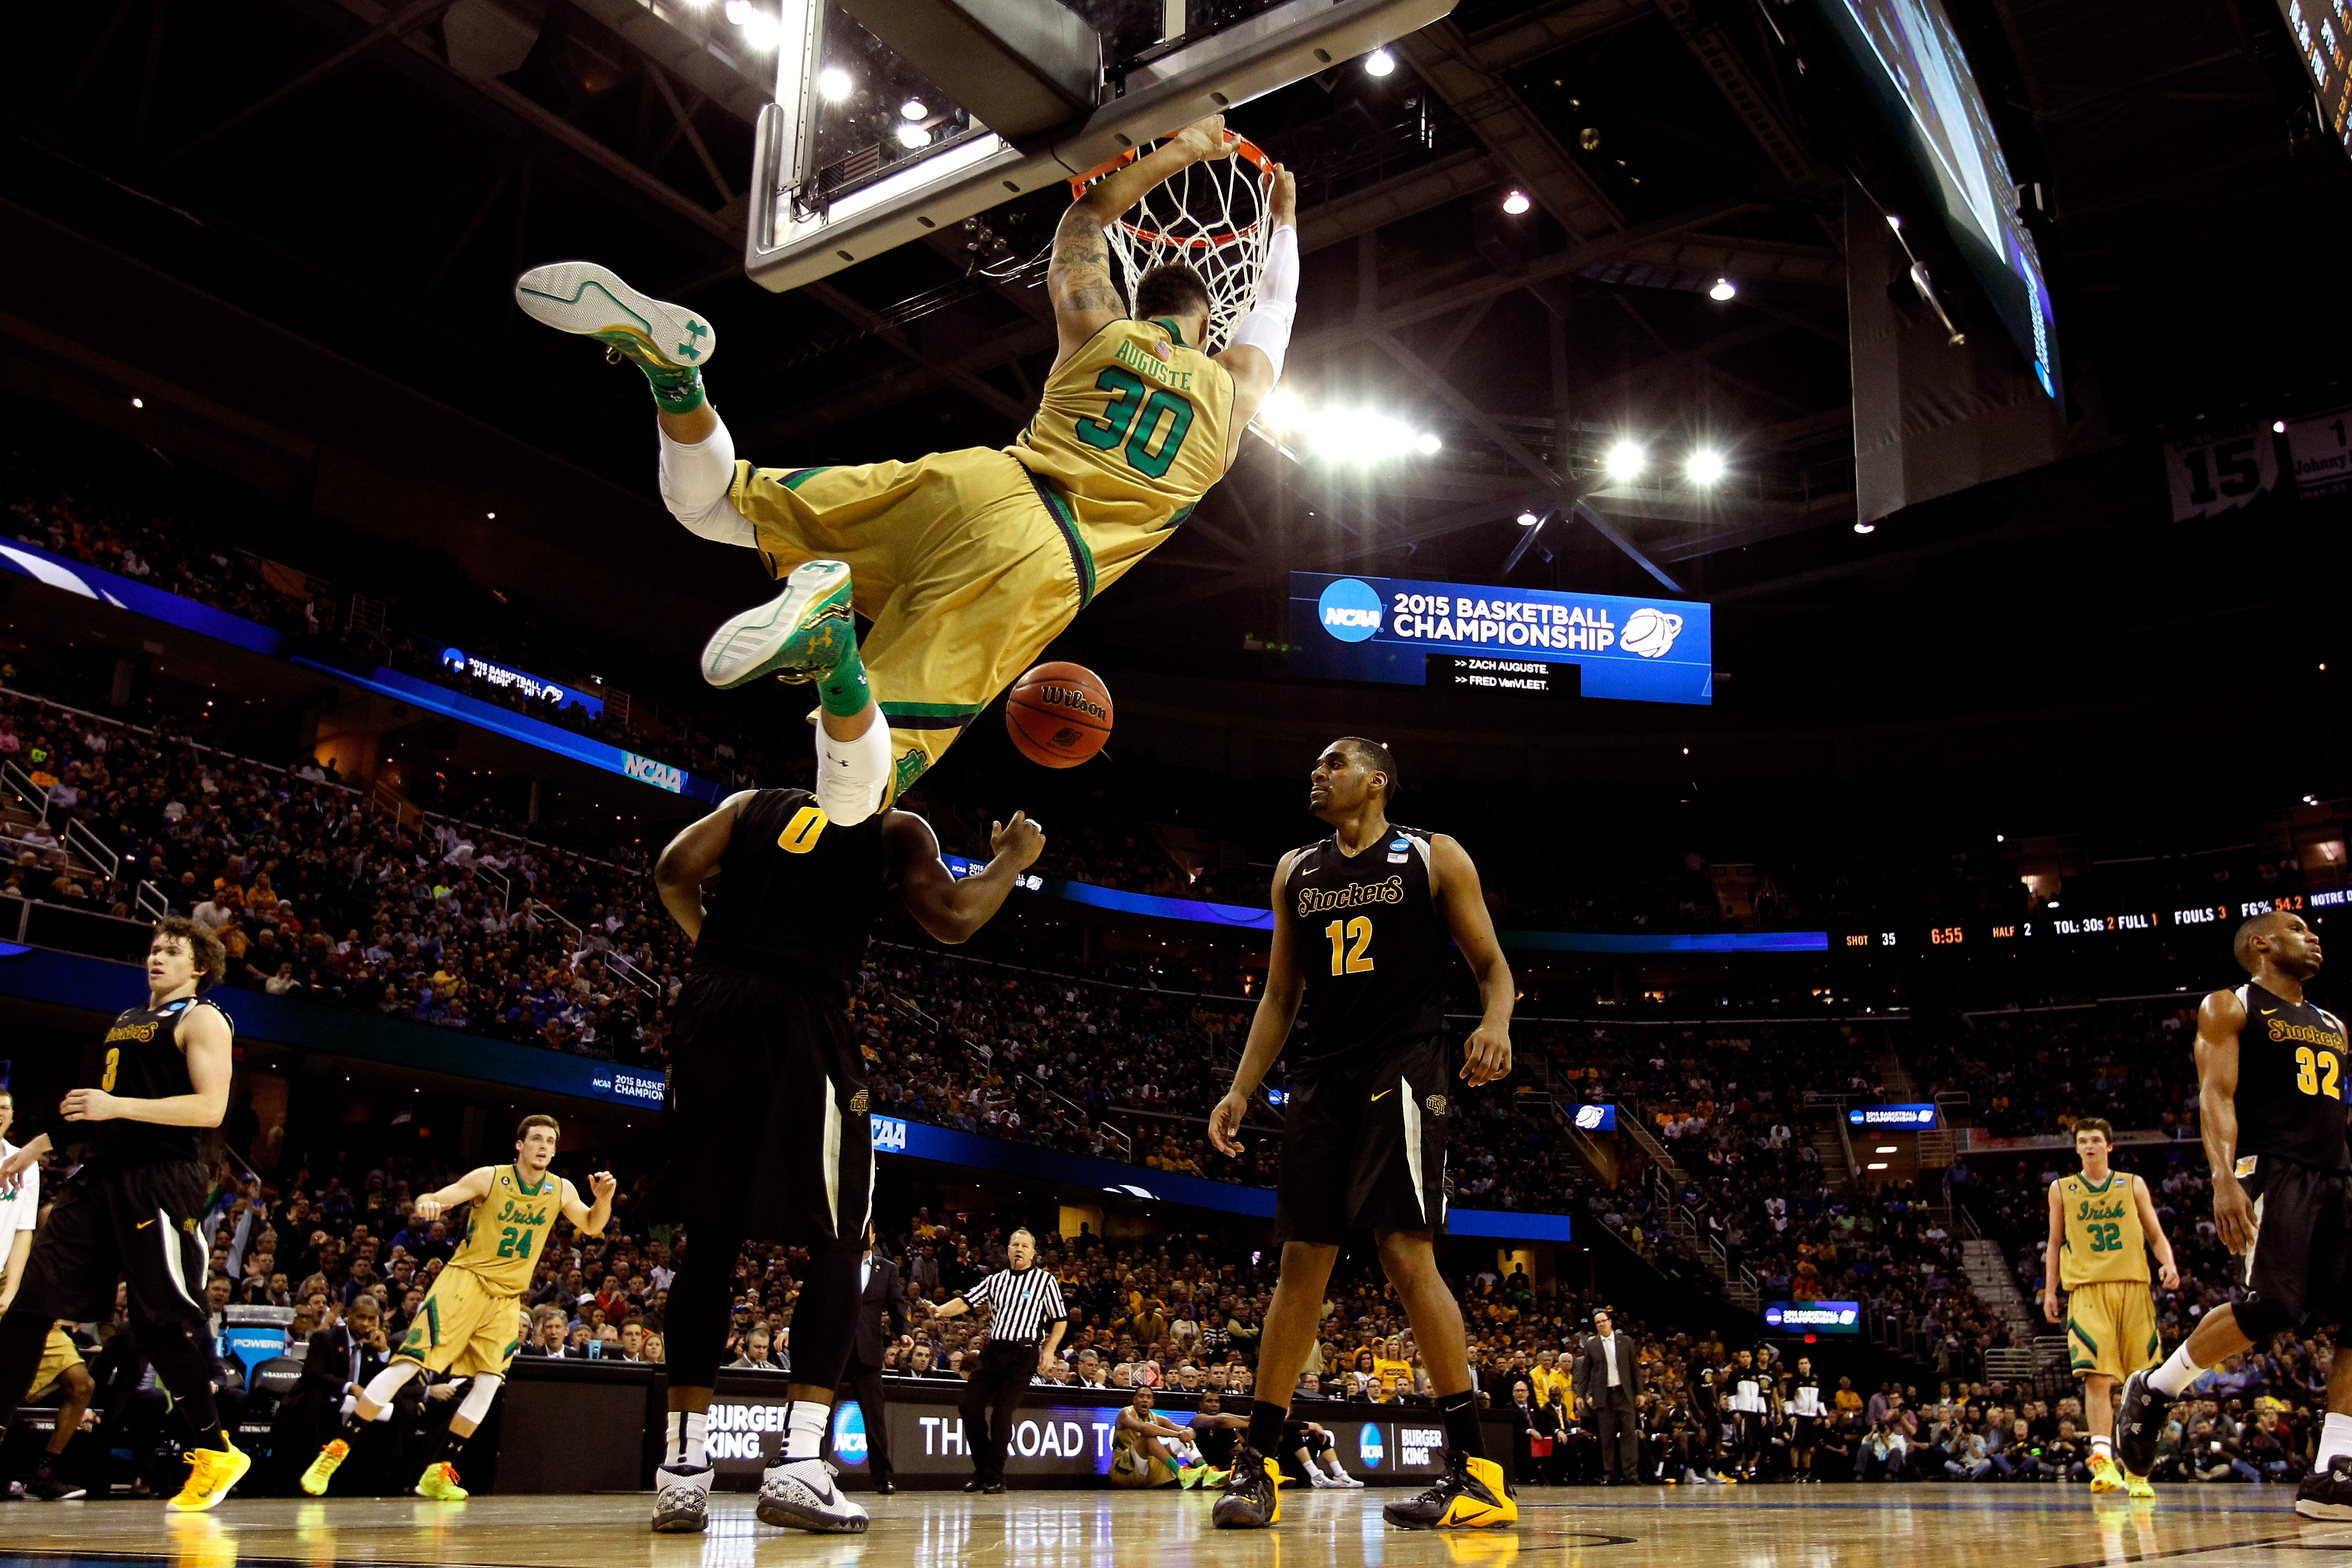 Zach Auguste #30 of the Notre Dame Fighting Irish dunks in the second half against Rashard Kelly #0 and Darius Carter #12 of the Wichita State Shockers during the Midwest Regional semifinal of the 2015 NCAA Men's Basketball Tournament at Quicken Loans Arena on March 26, 2015 in Cleveland, Ohio.